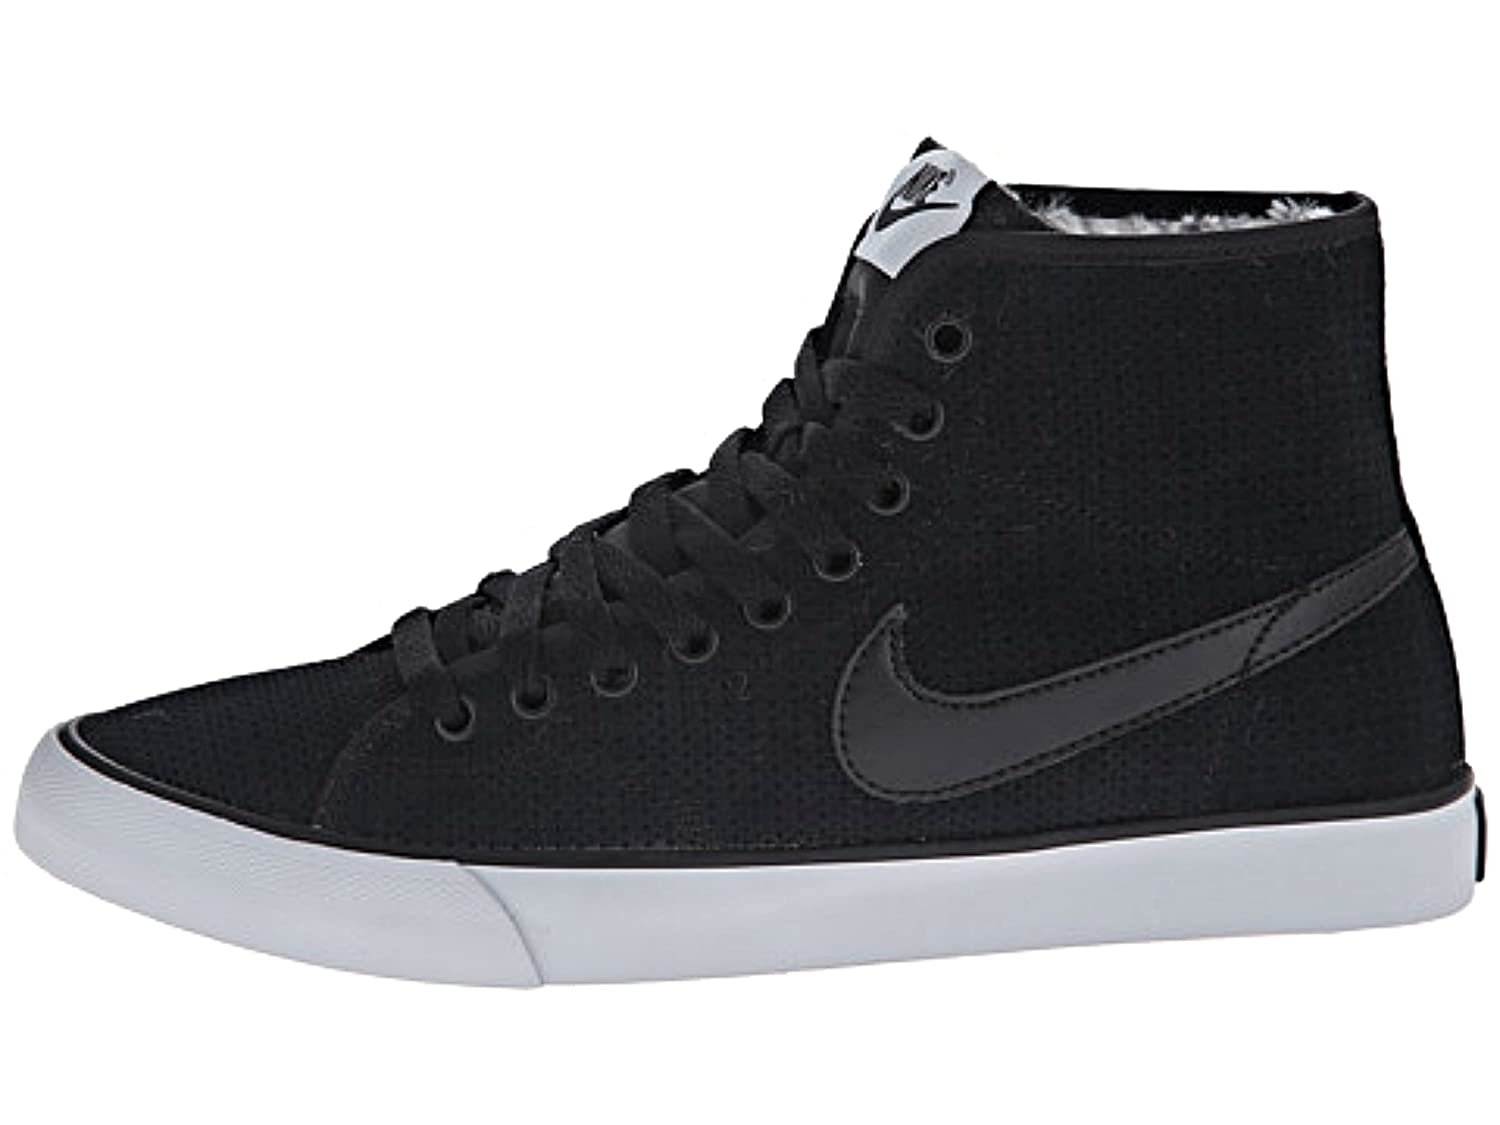 60d3159be624 durable service NIKE women s Primo Court Mid Suede Winter Sneakers Shoes.